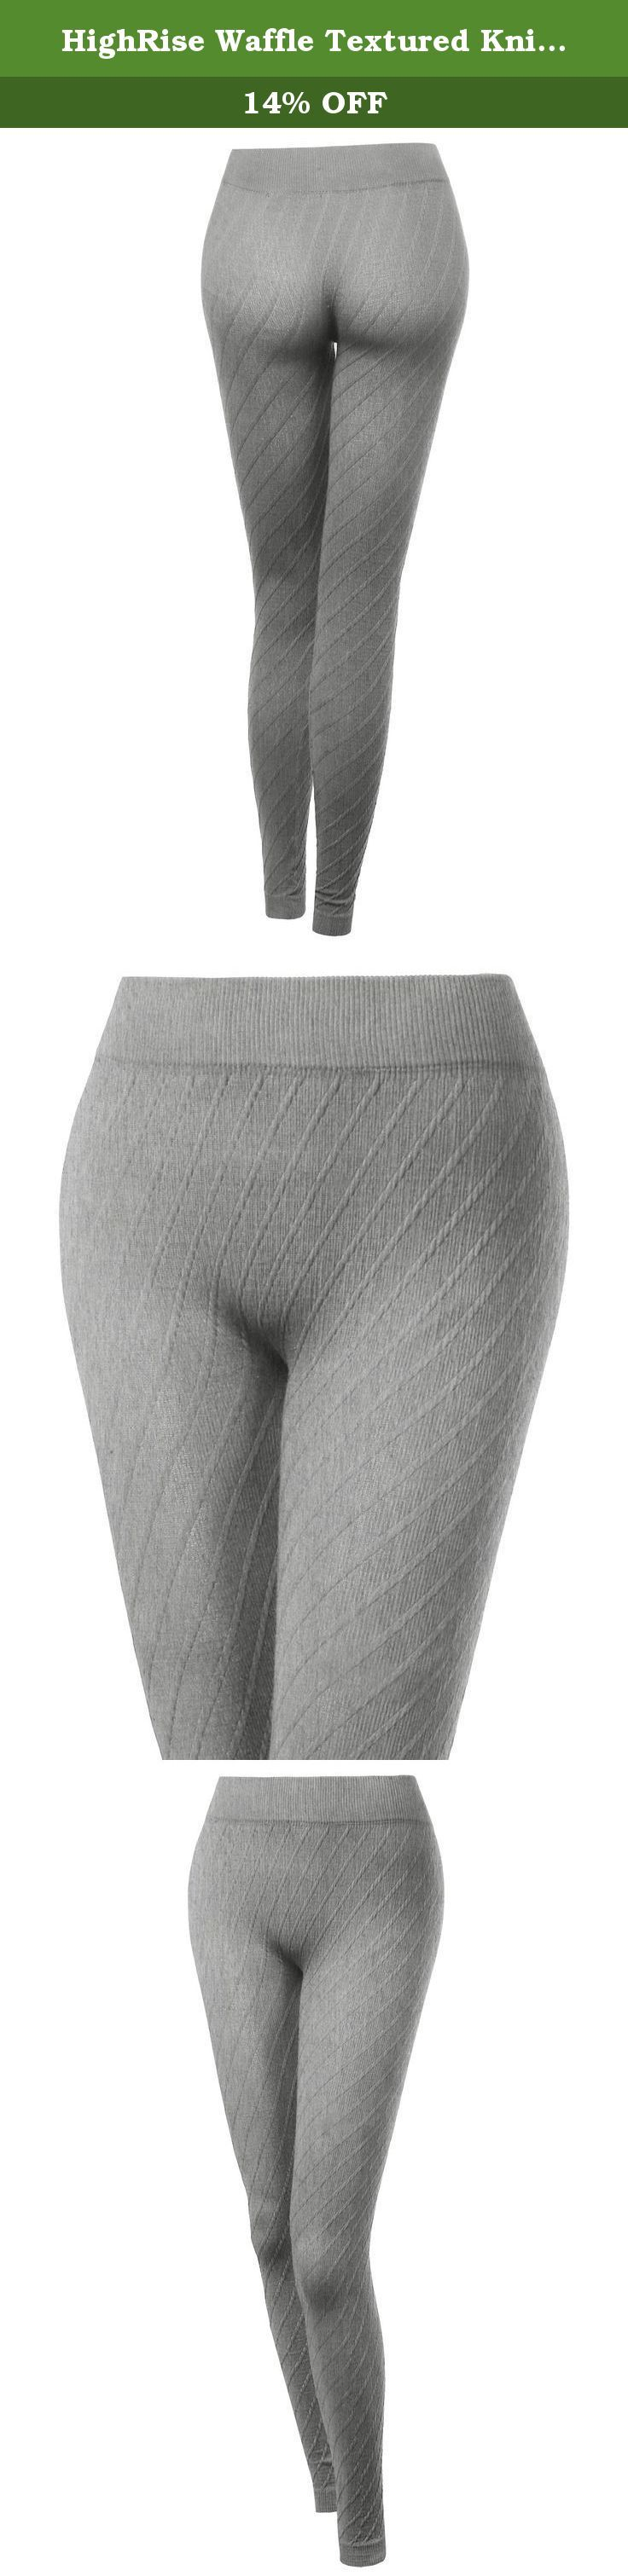 HighRise Waffle Textured Knitted Good Strechy legging Gray Size SM. Awesome21 is a company which carries professionally in womenswear. We specialize in basic to trendy items which will interest all the ladies and women looking for casual or stylish and unique clothes with quality fabric. This Long Sleeve Short Suit Blazer Jacket with belted neck and zipper details which makes you look so gorgeous and cute. Very good stretchy fabric fits well short length blazer easy to match with Jeans...